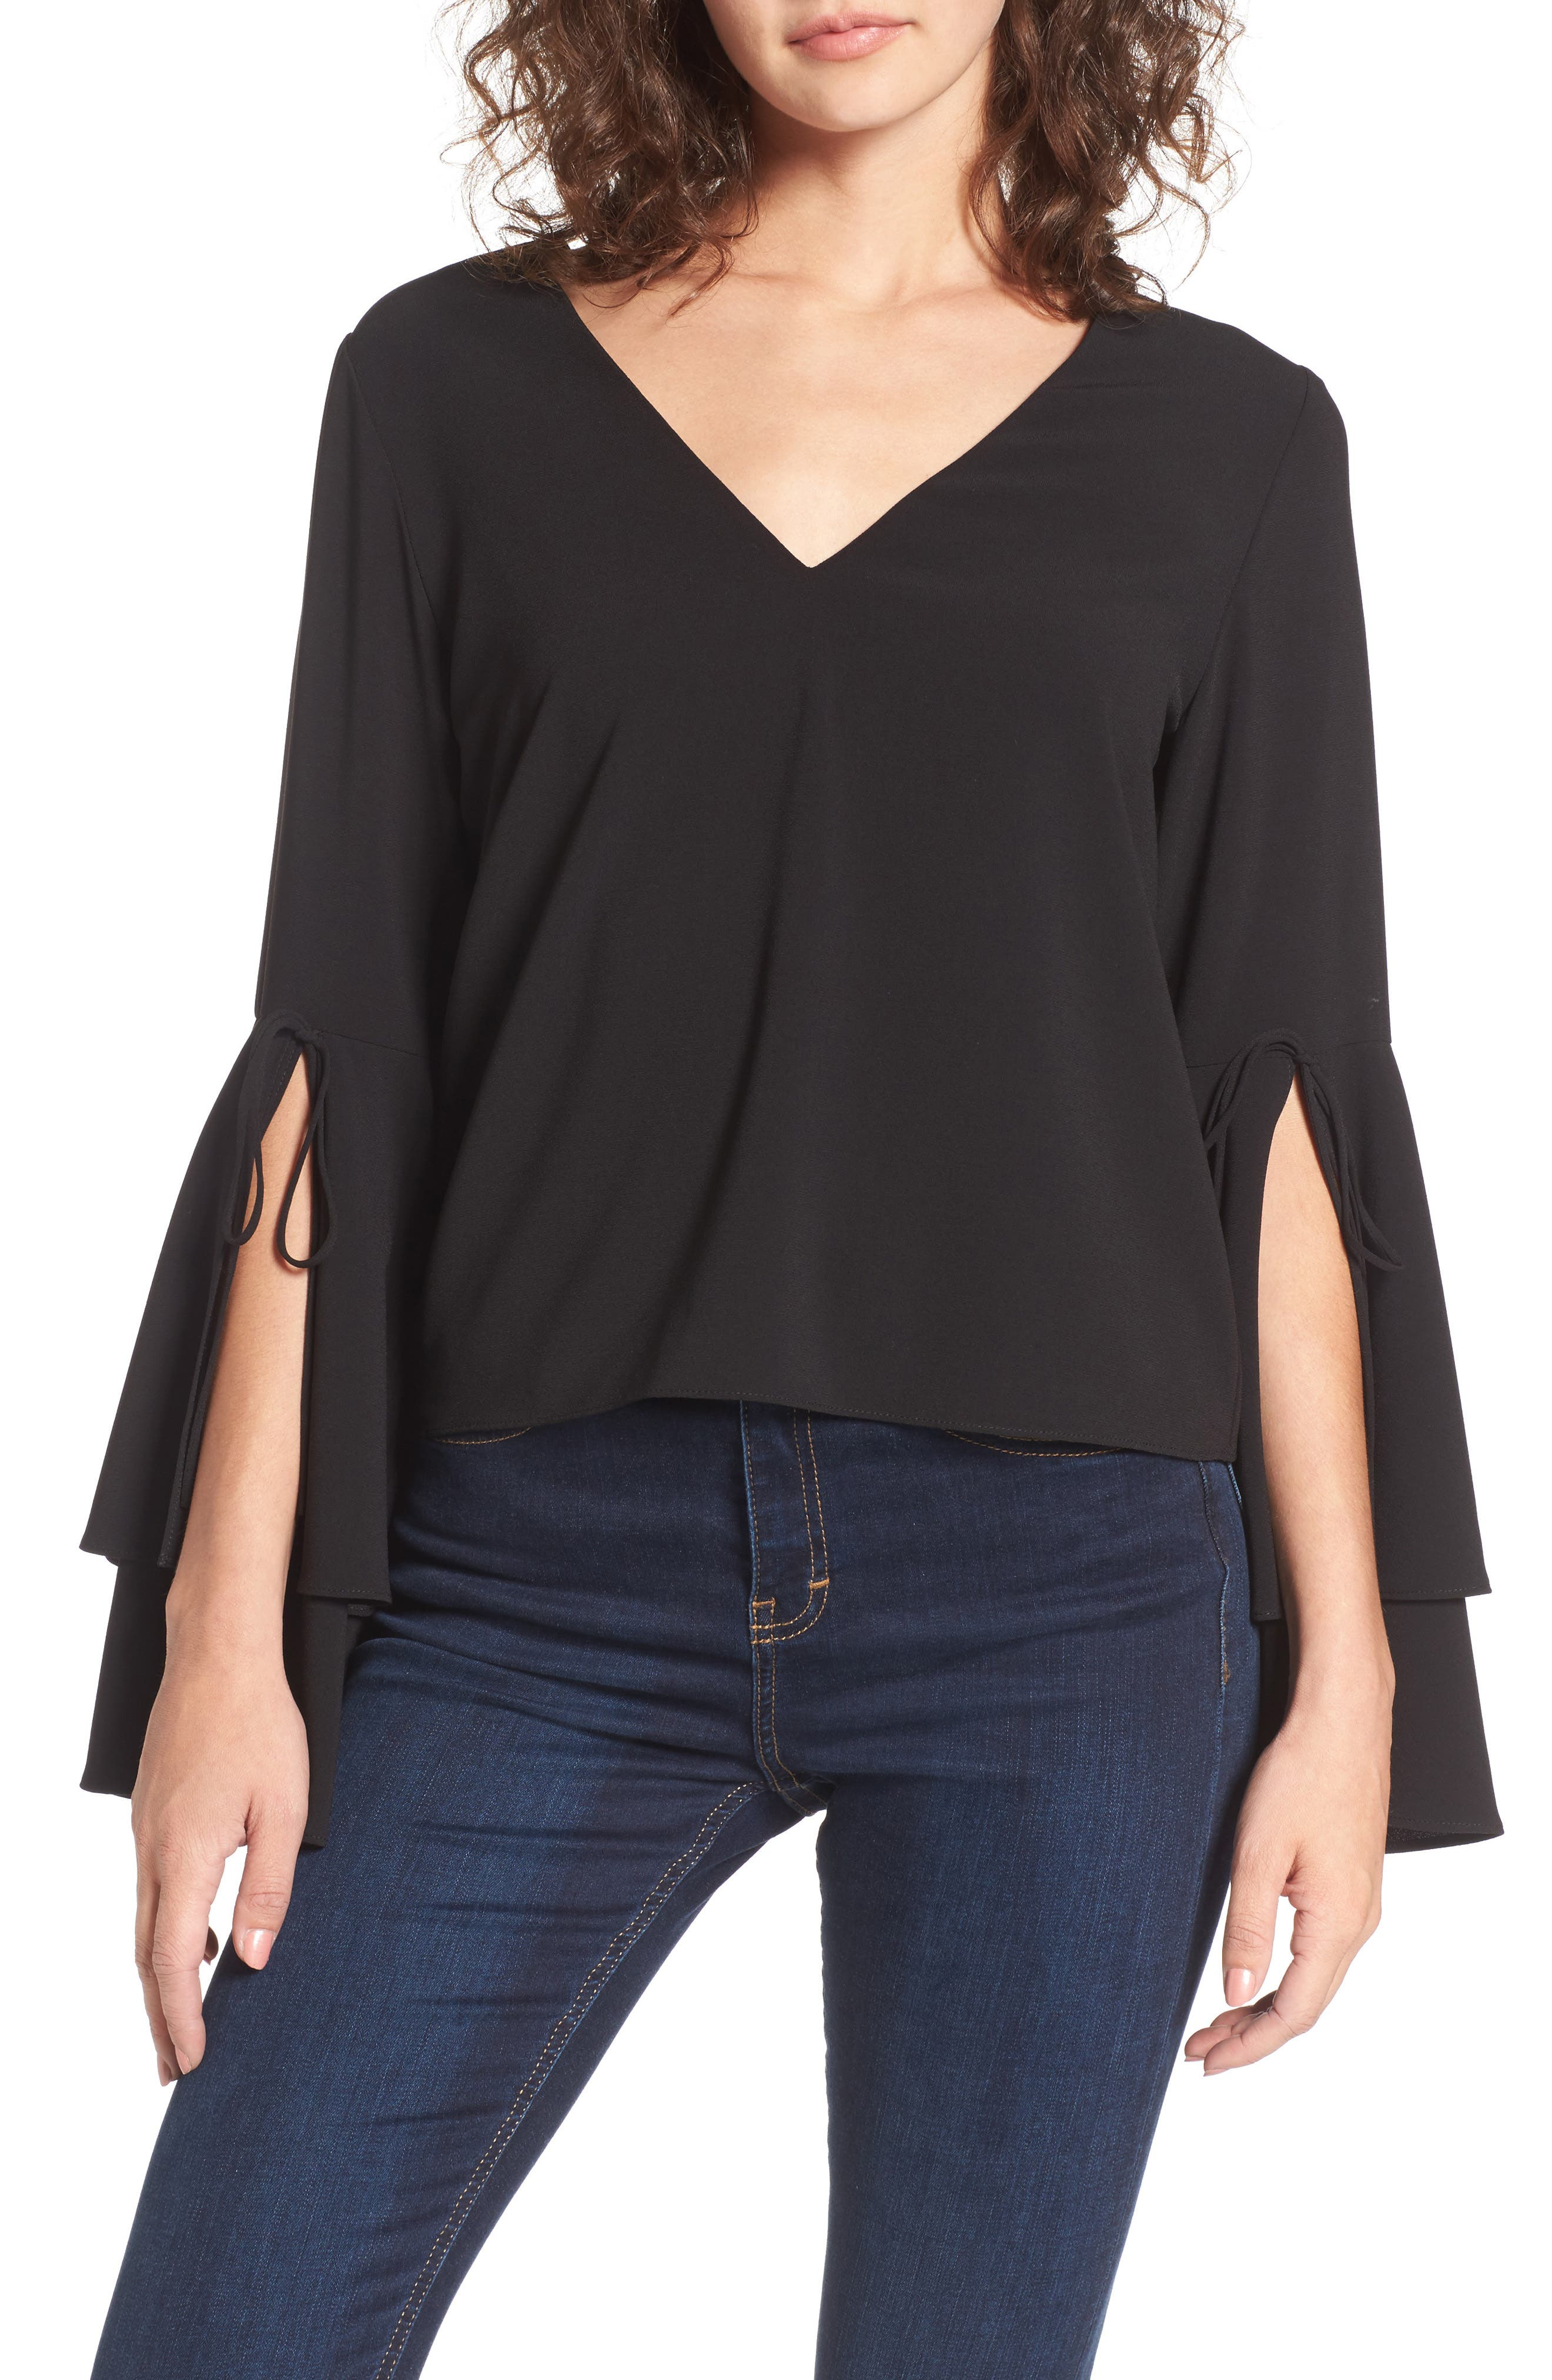 STOREE Ruffle Bell Sleeve Top